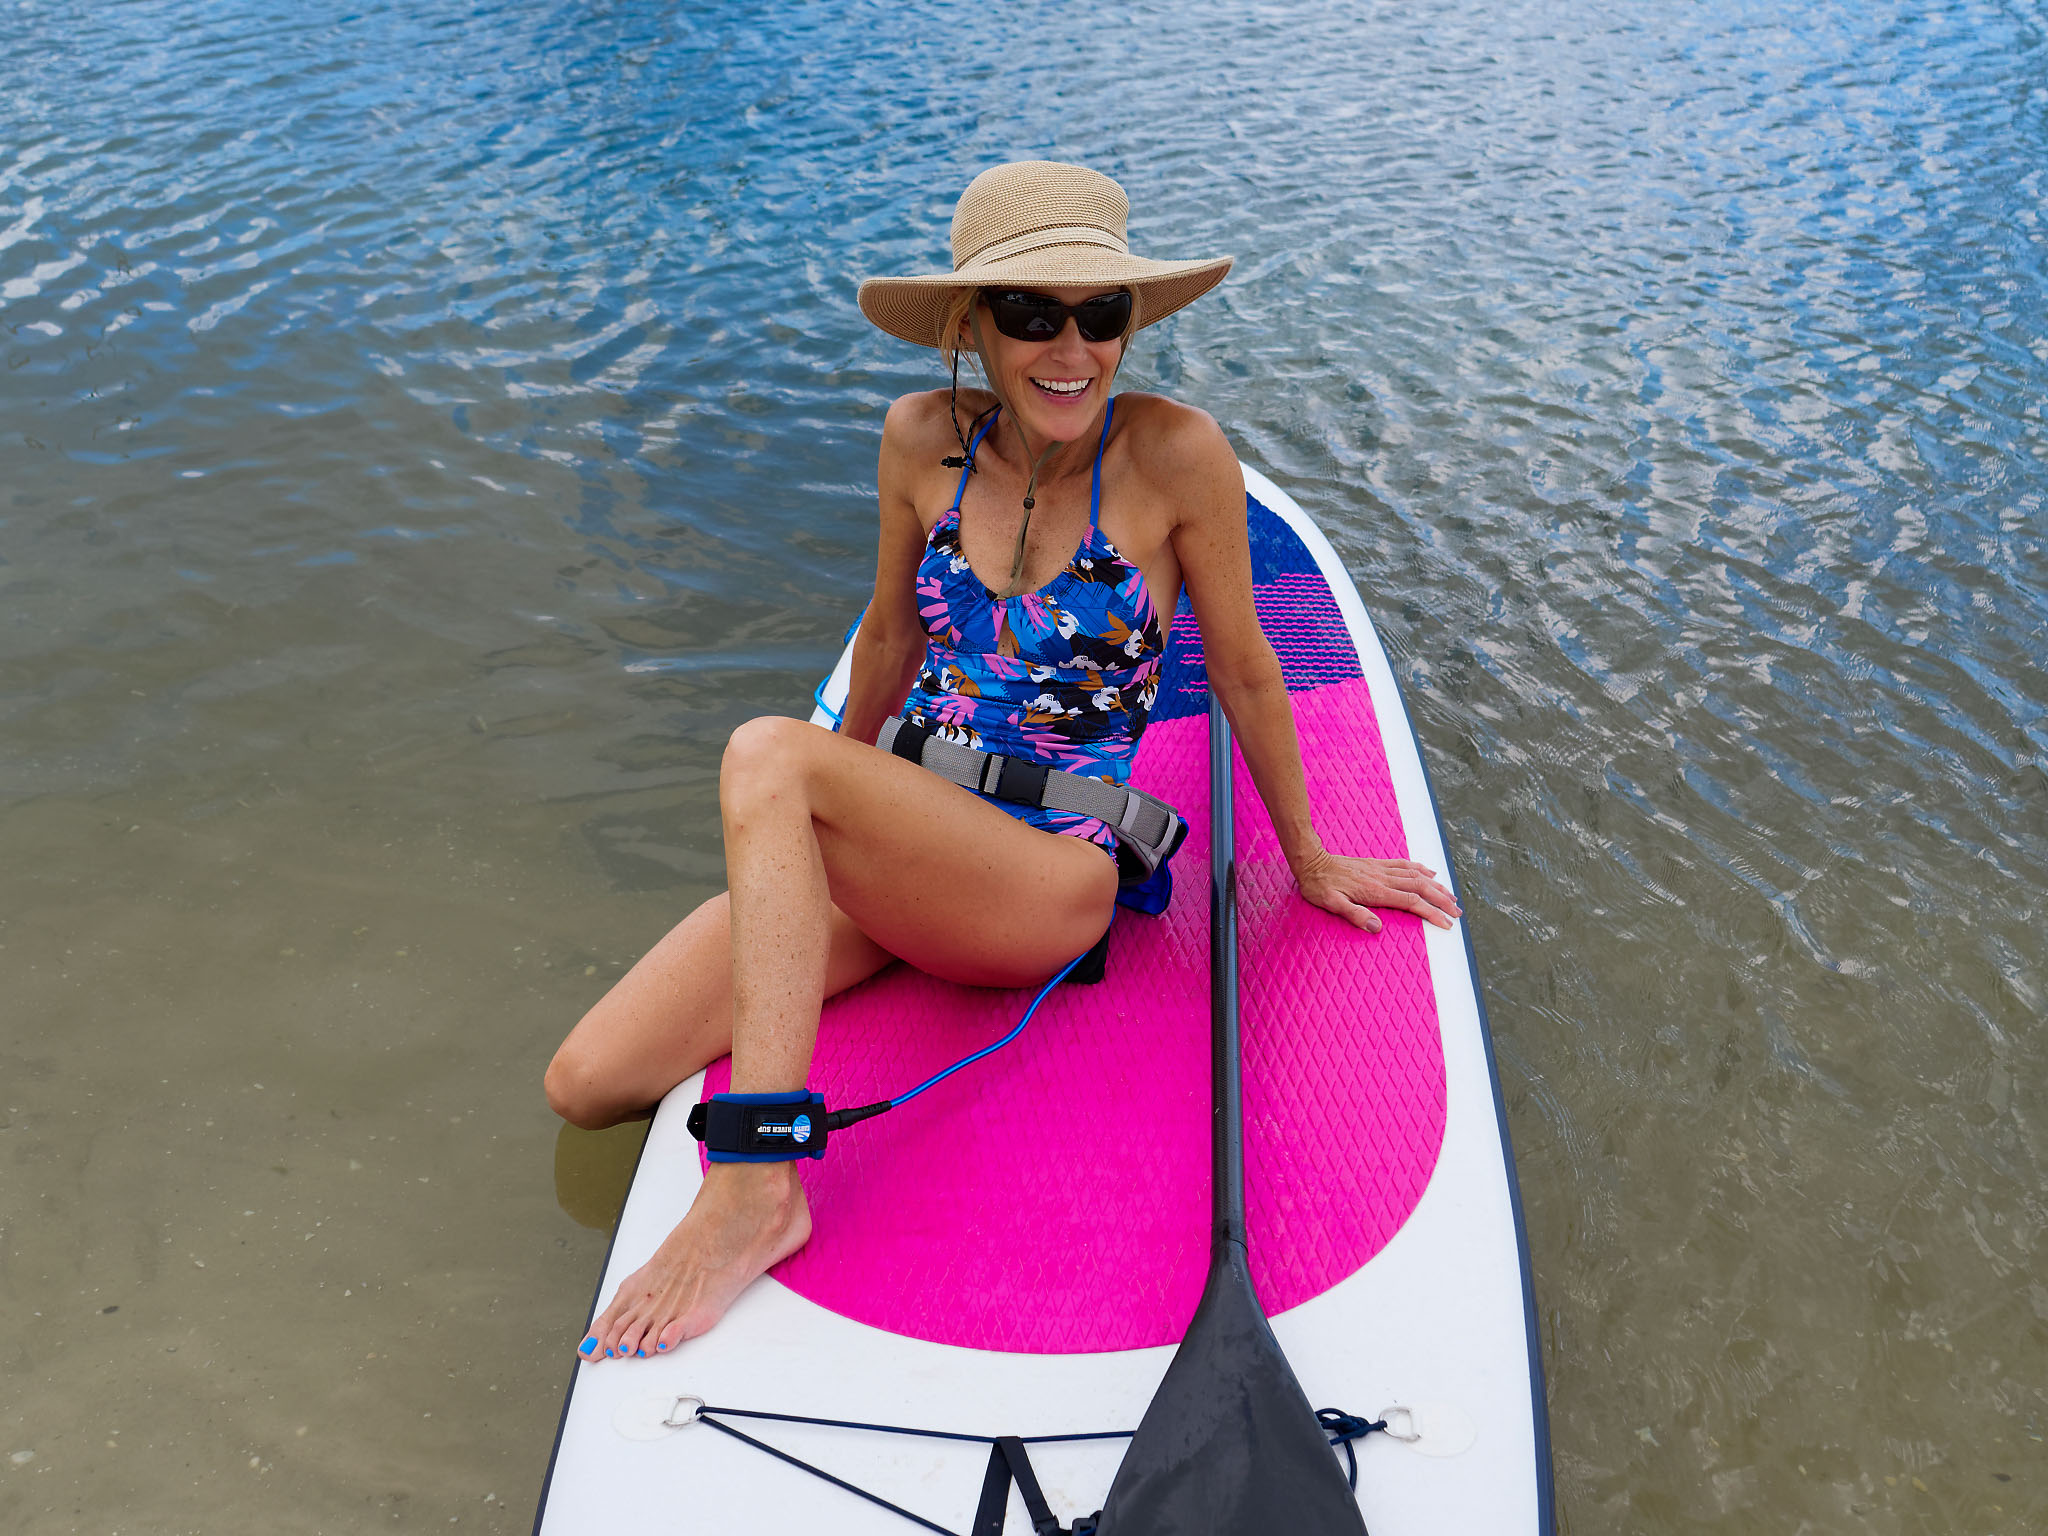 Paddle boarder over 50s